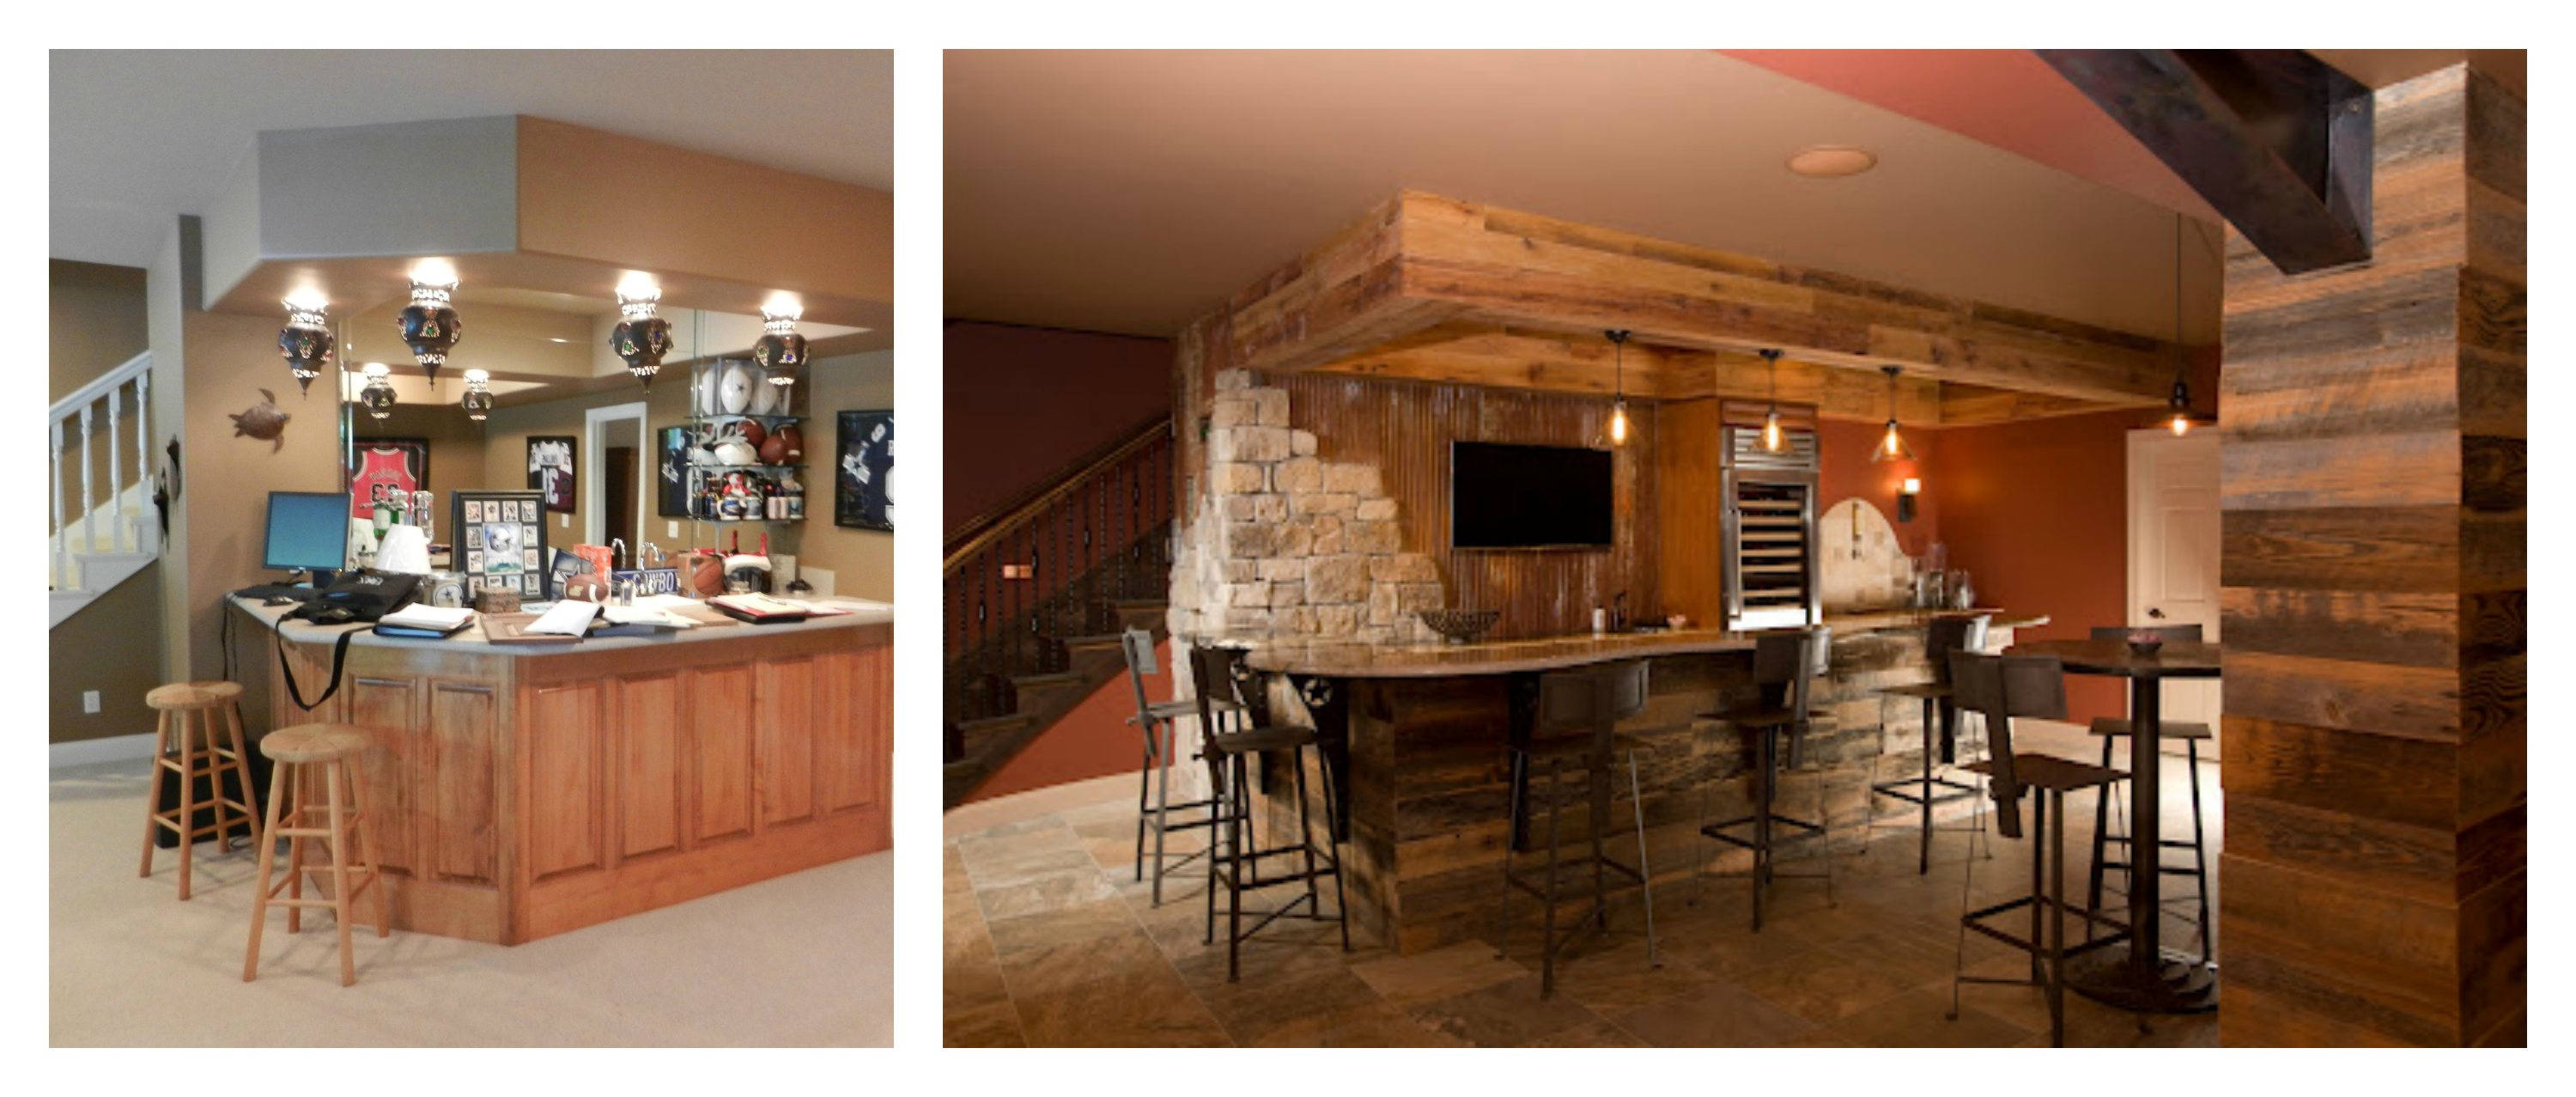 Basement remodeling possibilities dreammaker bath kitchen for Home bar renovation